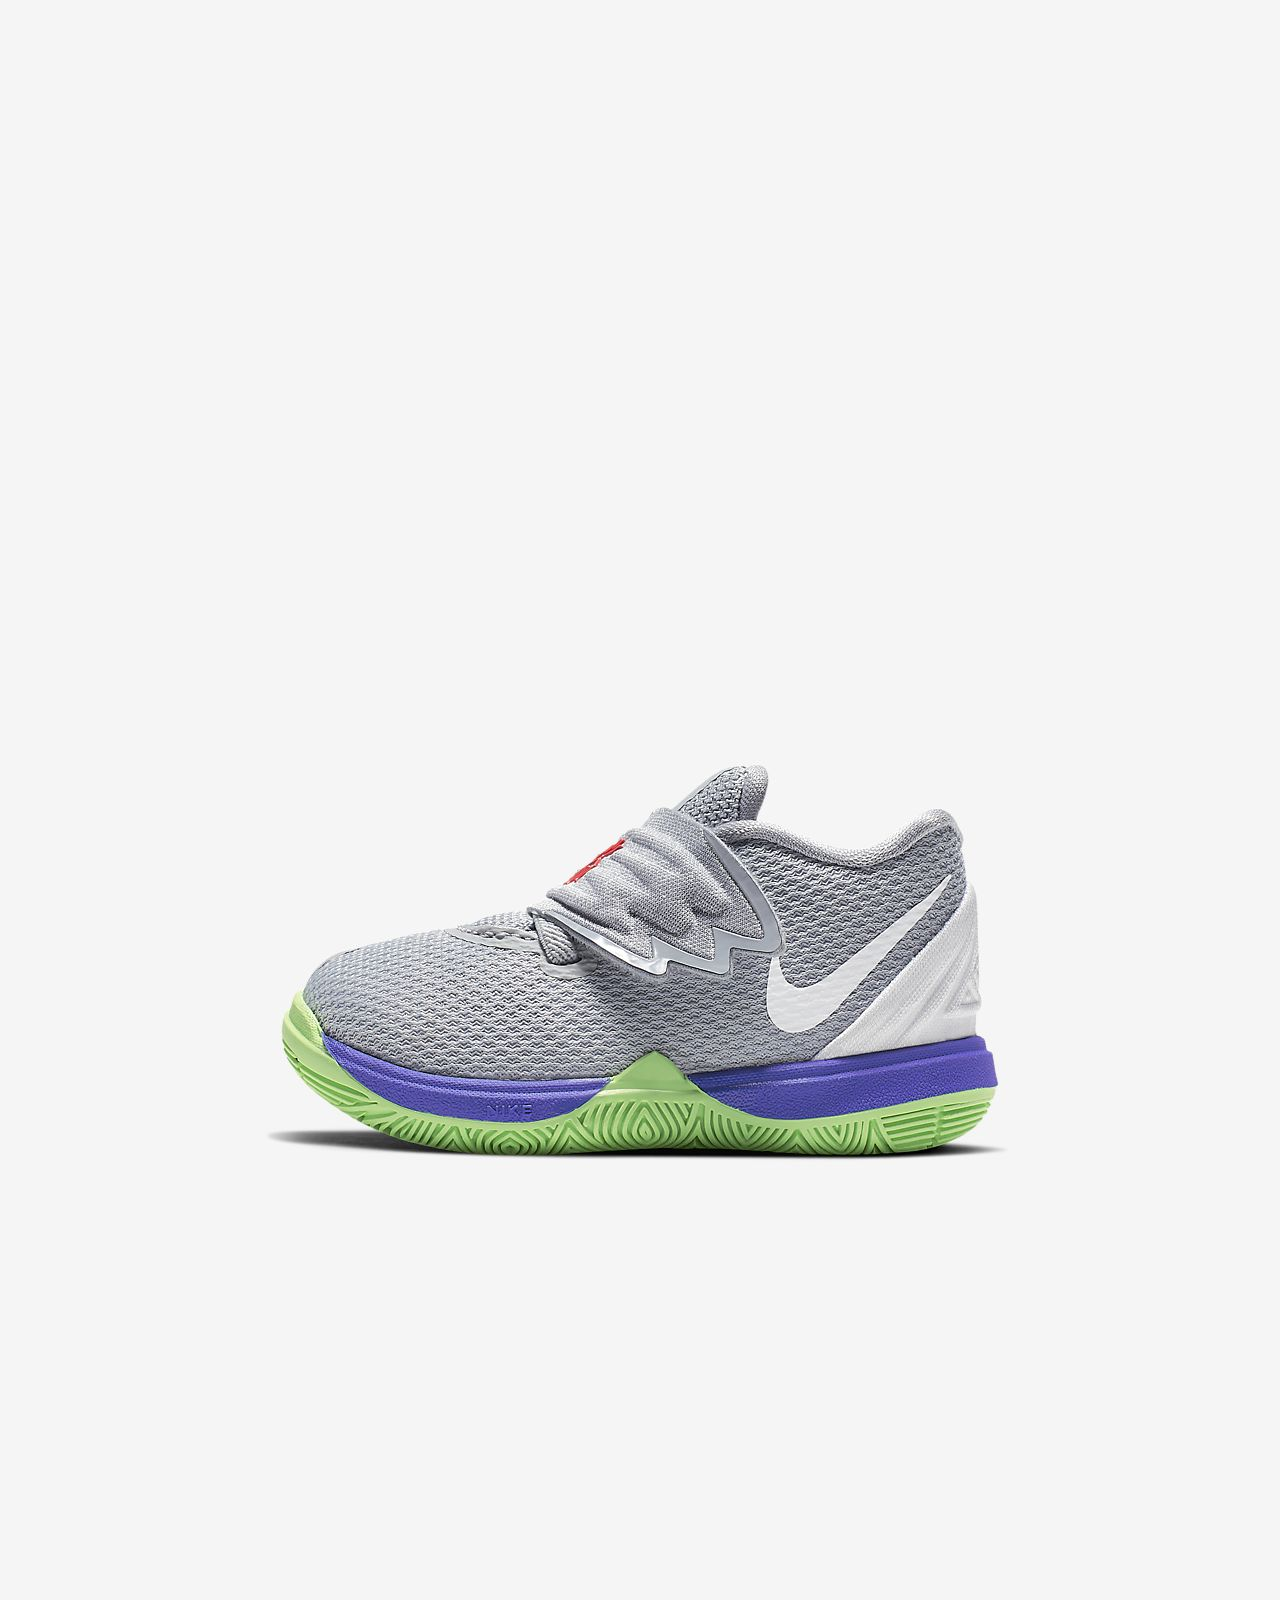 Kyrie 5 Baby & Toddler Shoe